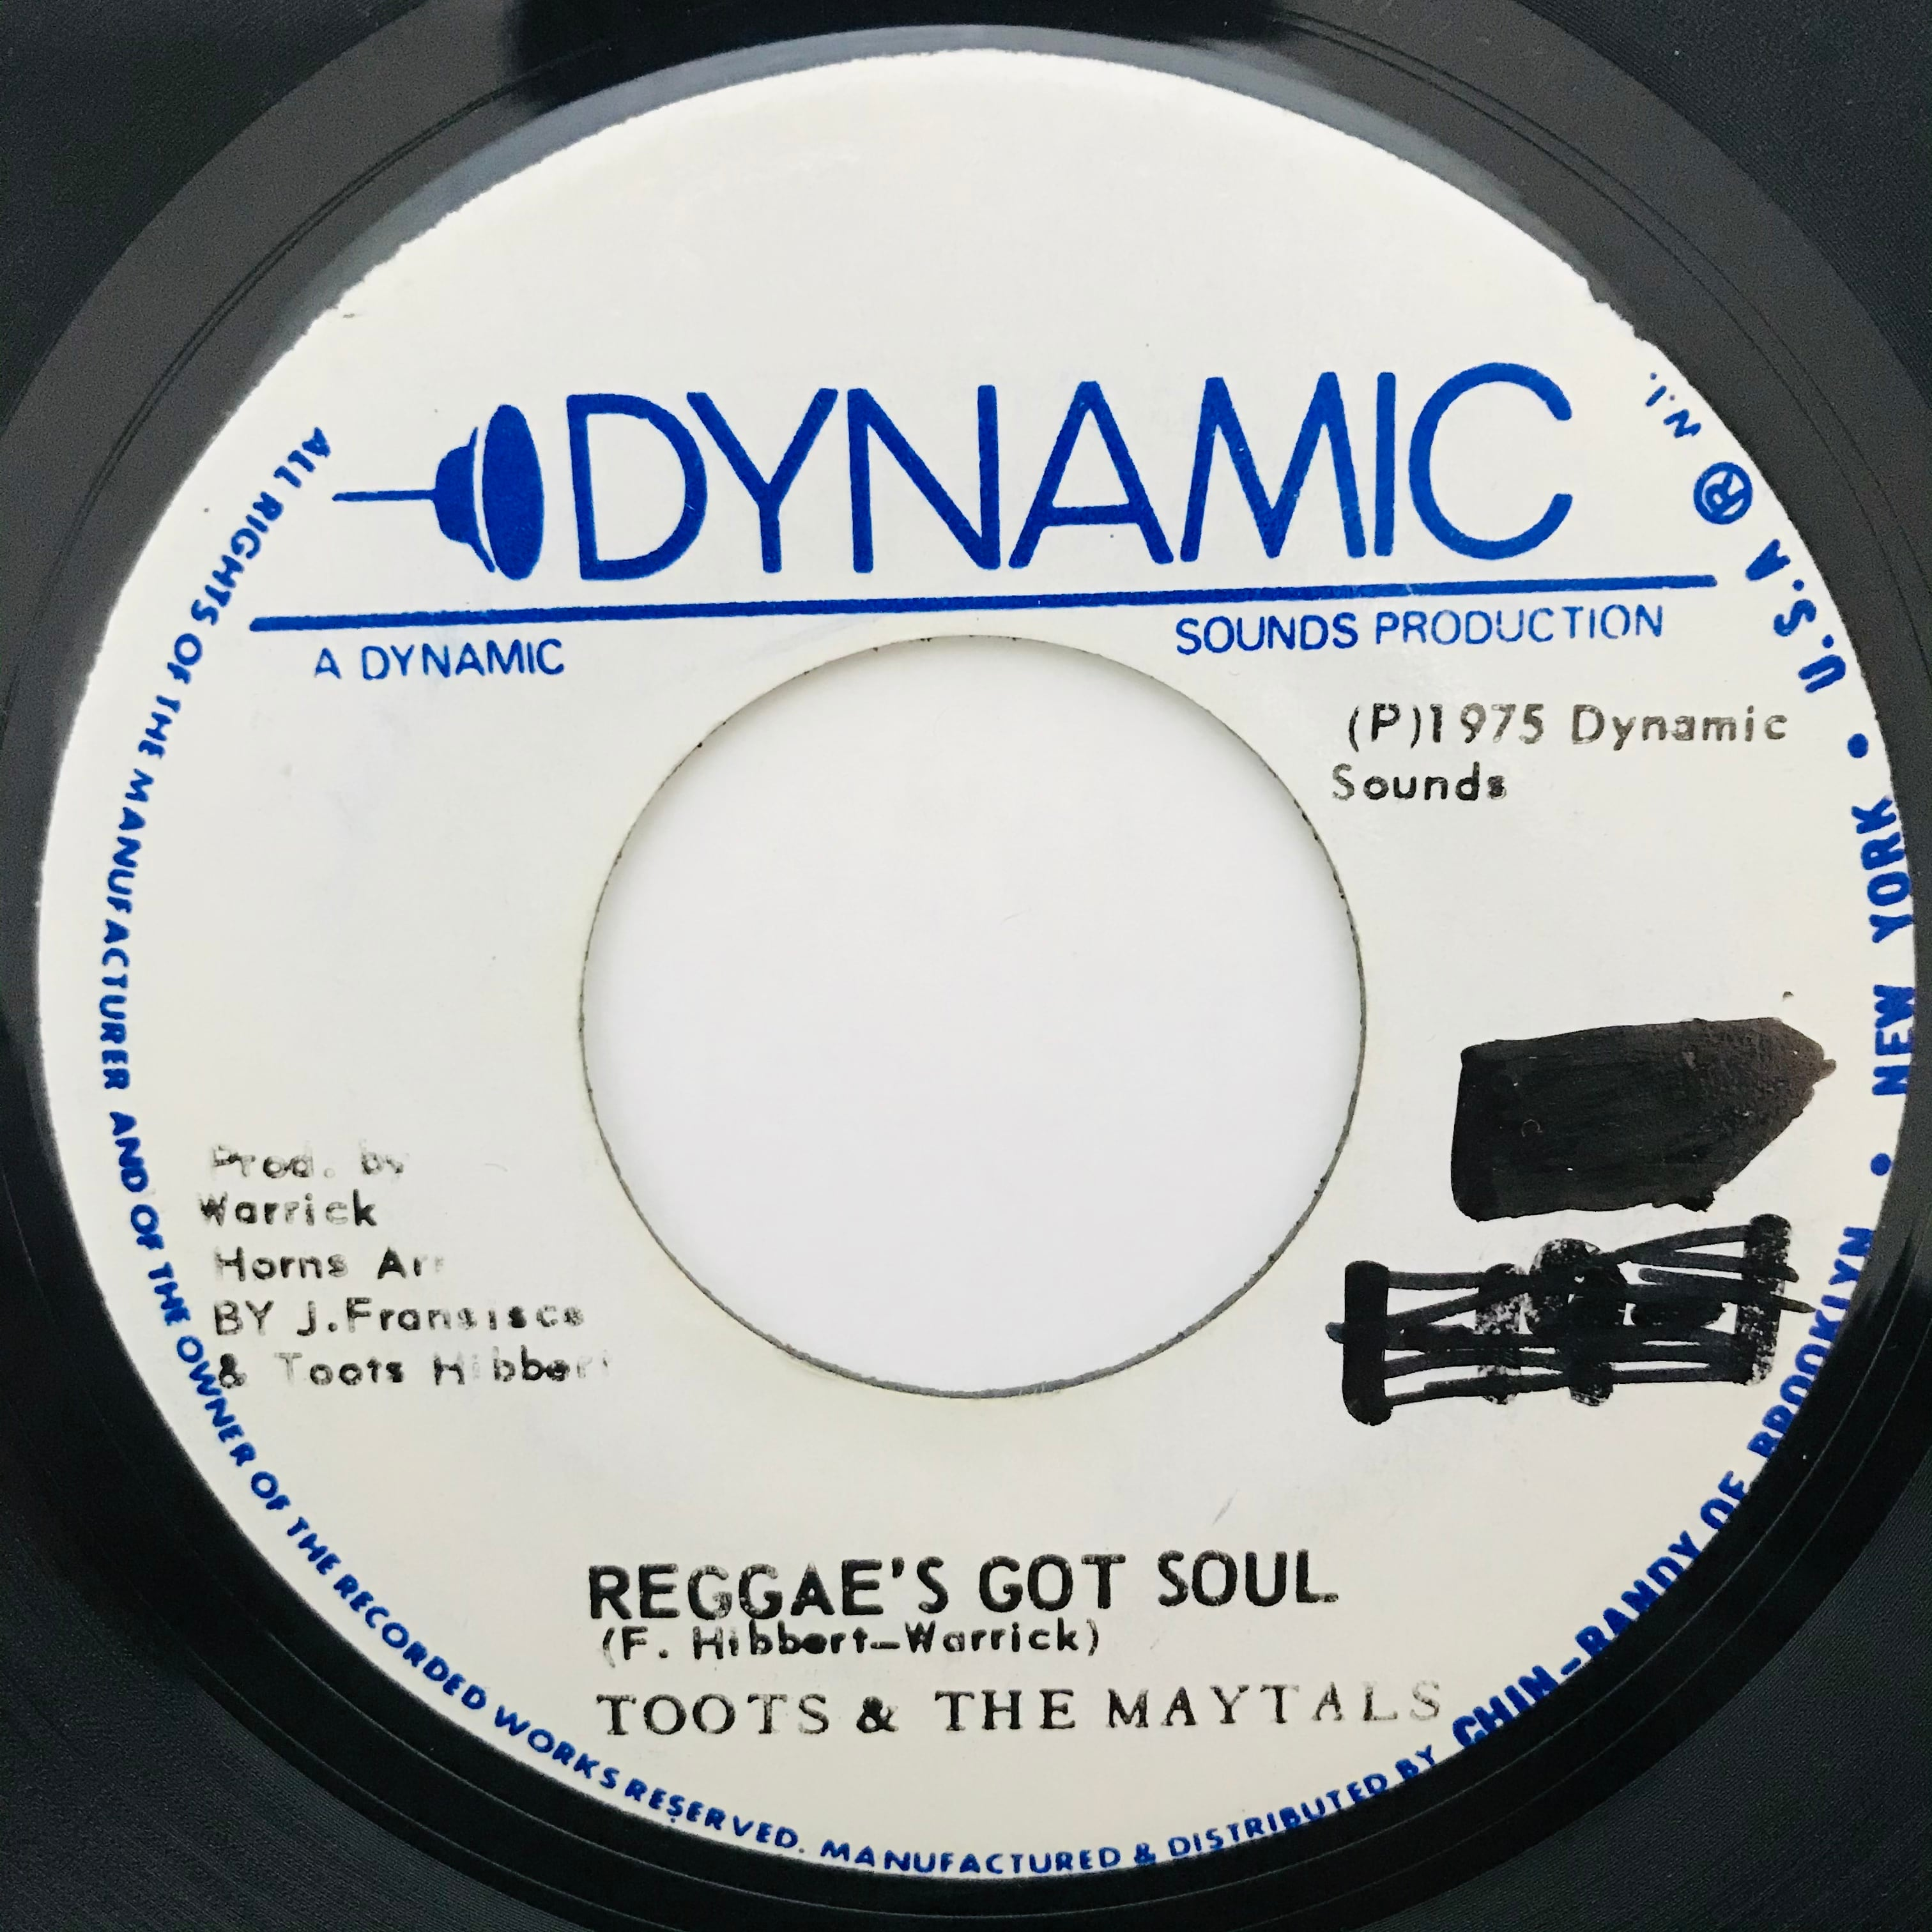 Toots & The Maytals - Reggae's Got Soul【7-10939】